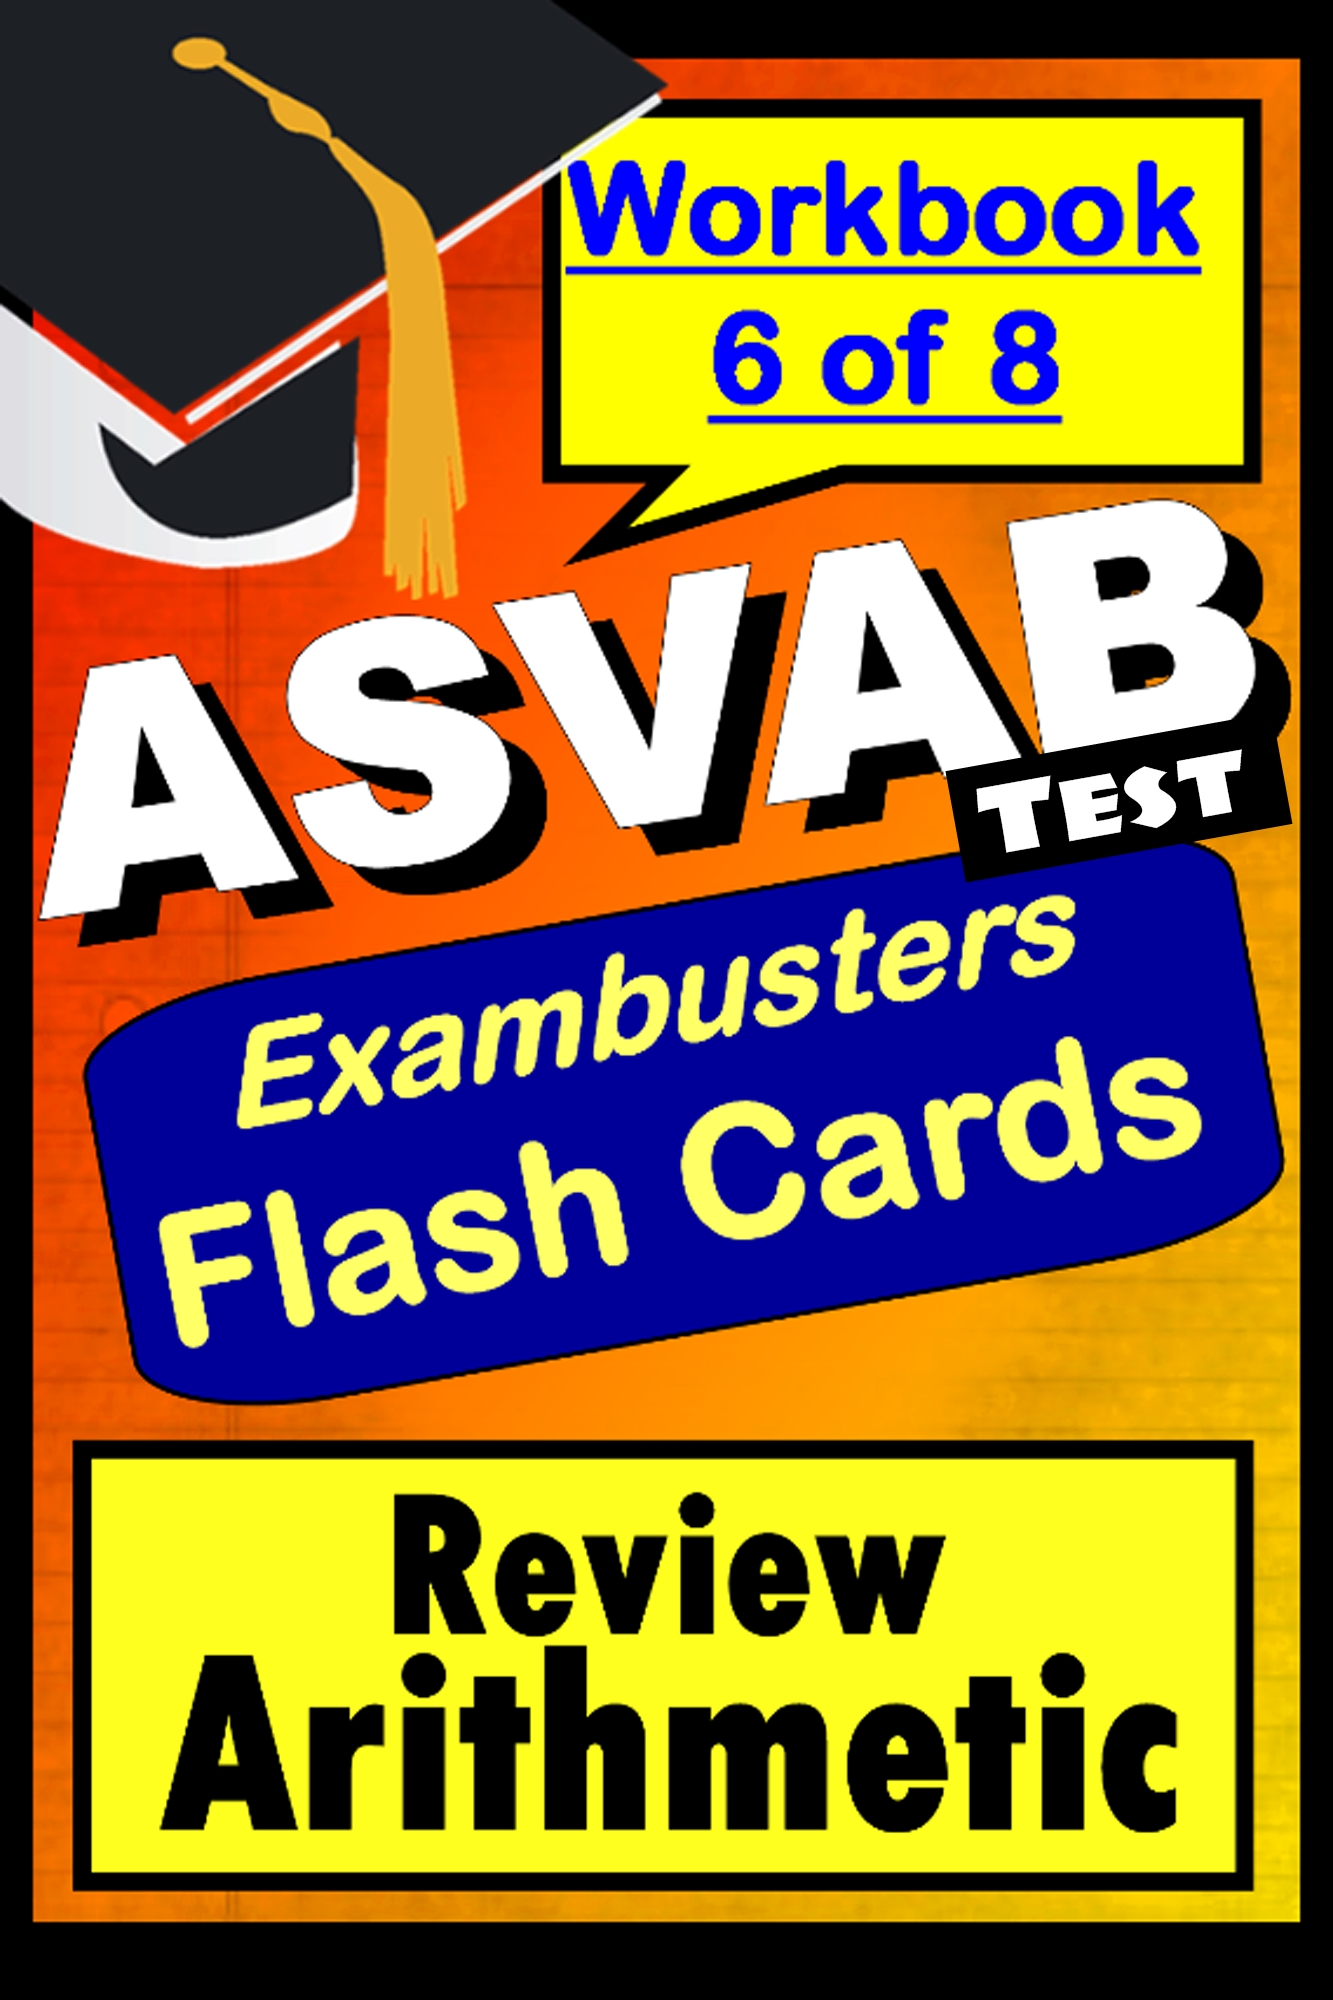 ASVAB Test Arithmetic Review--Exambusters Flashcards--Workbook 6 of 8 By: Ace Academics